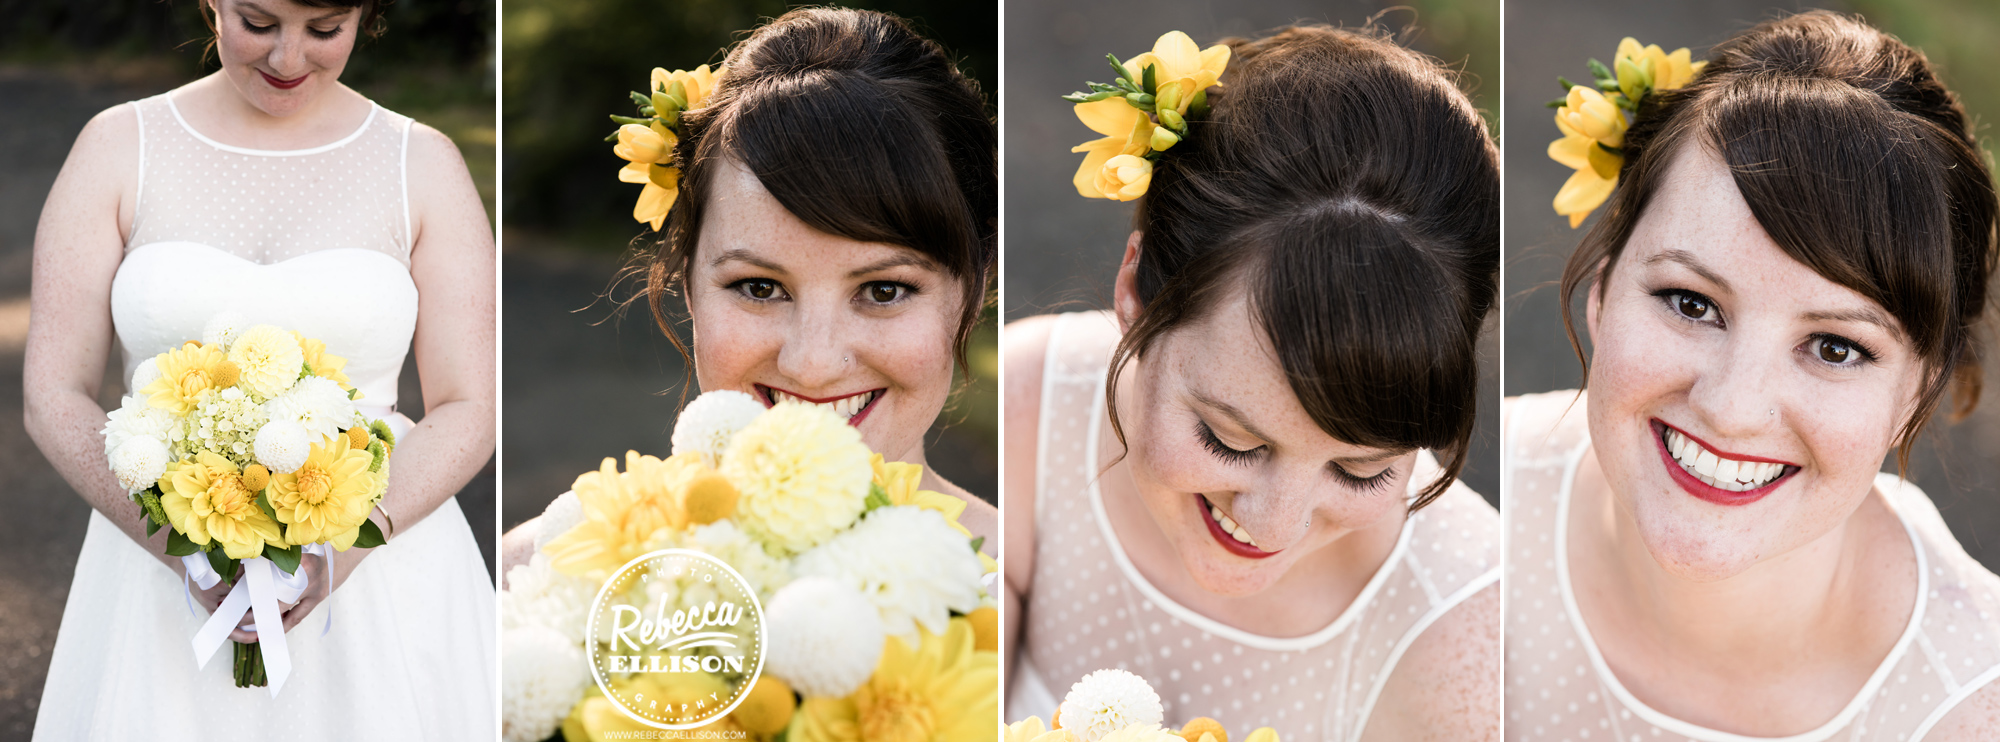 Bridal details featuring flowers, hair and makeup at an orange and yellow backyard beach house wedding photographed by Seattle wedding photographer Rebecca Ellison